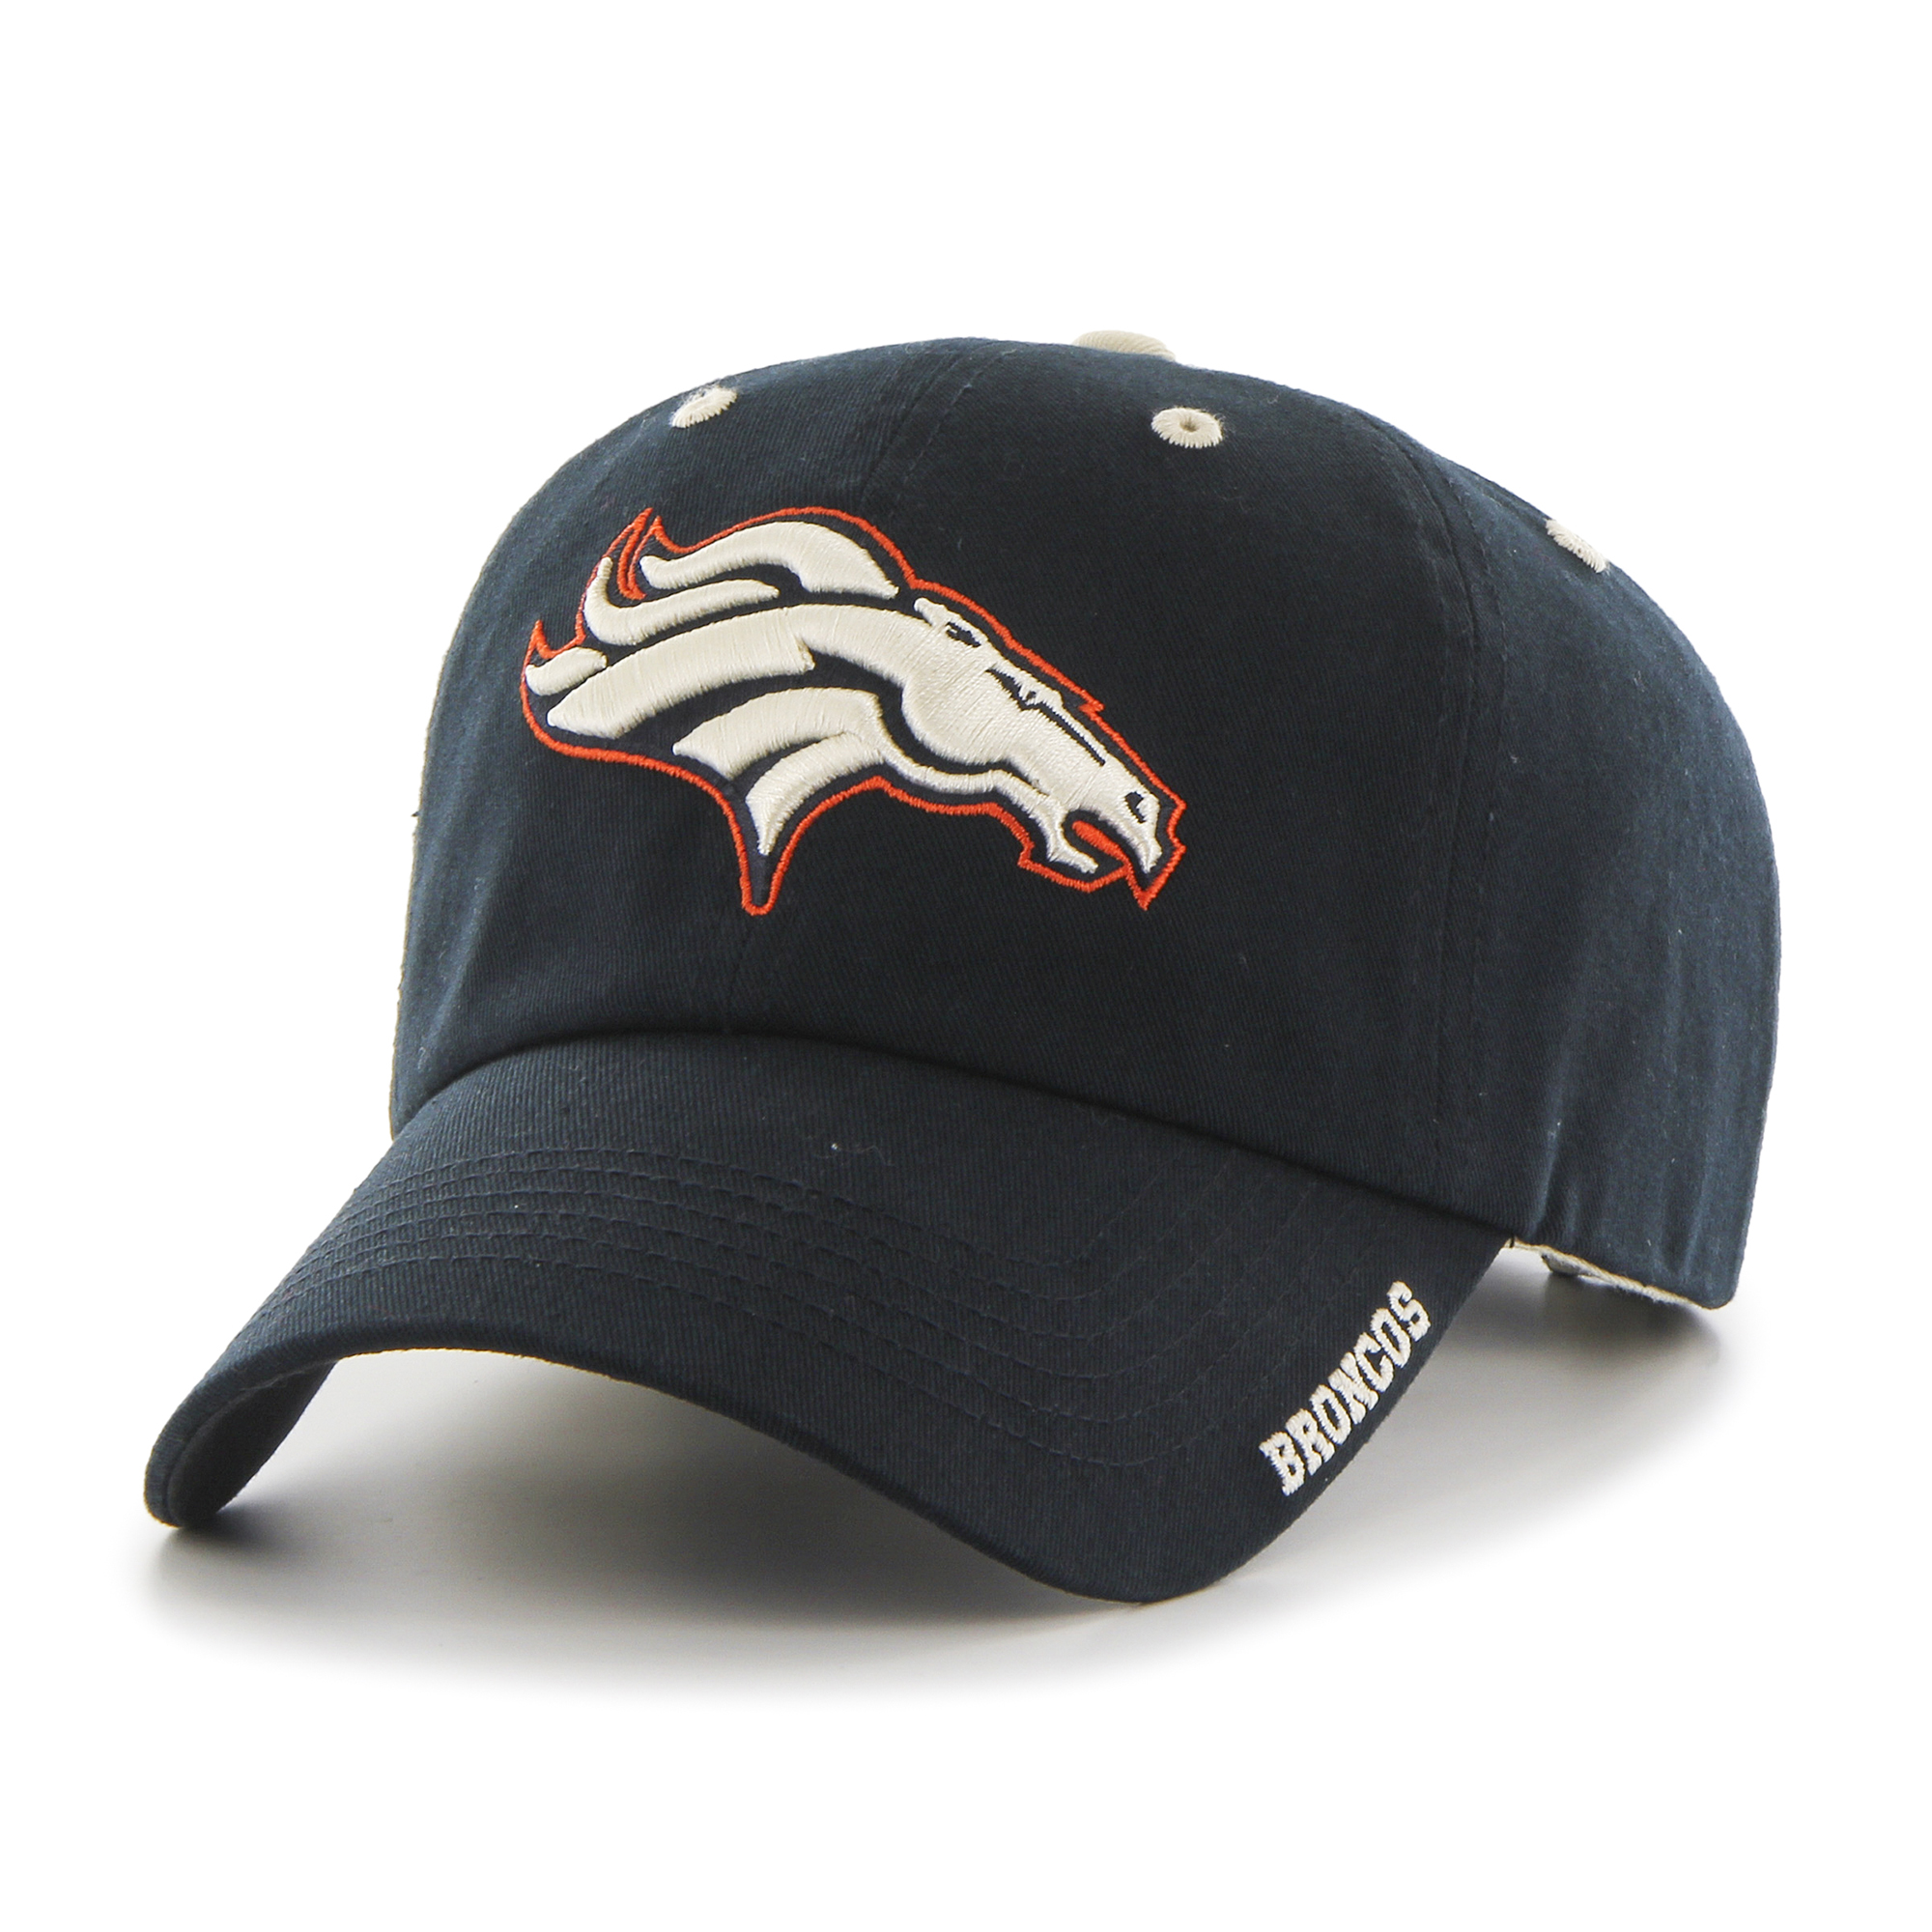 NFL Denver Broncos Ice Adjustable Cap/Hat by Fan Favorite